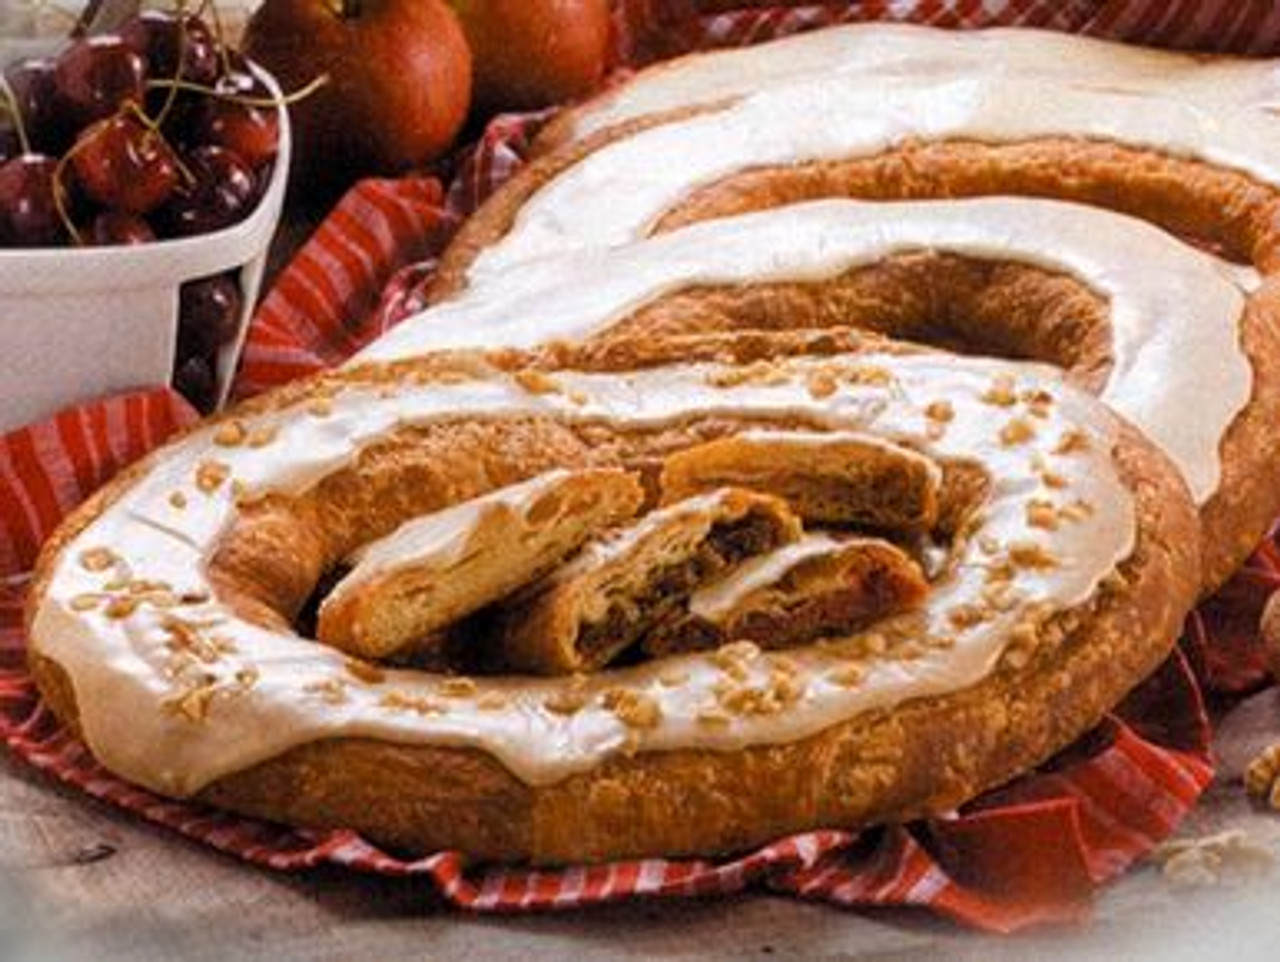 Kringle of the Month Club Gift from O&H Danish Bakery available on WisconsinMade Artisan Collective